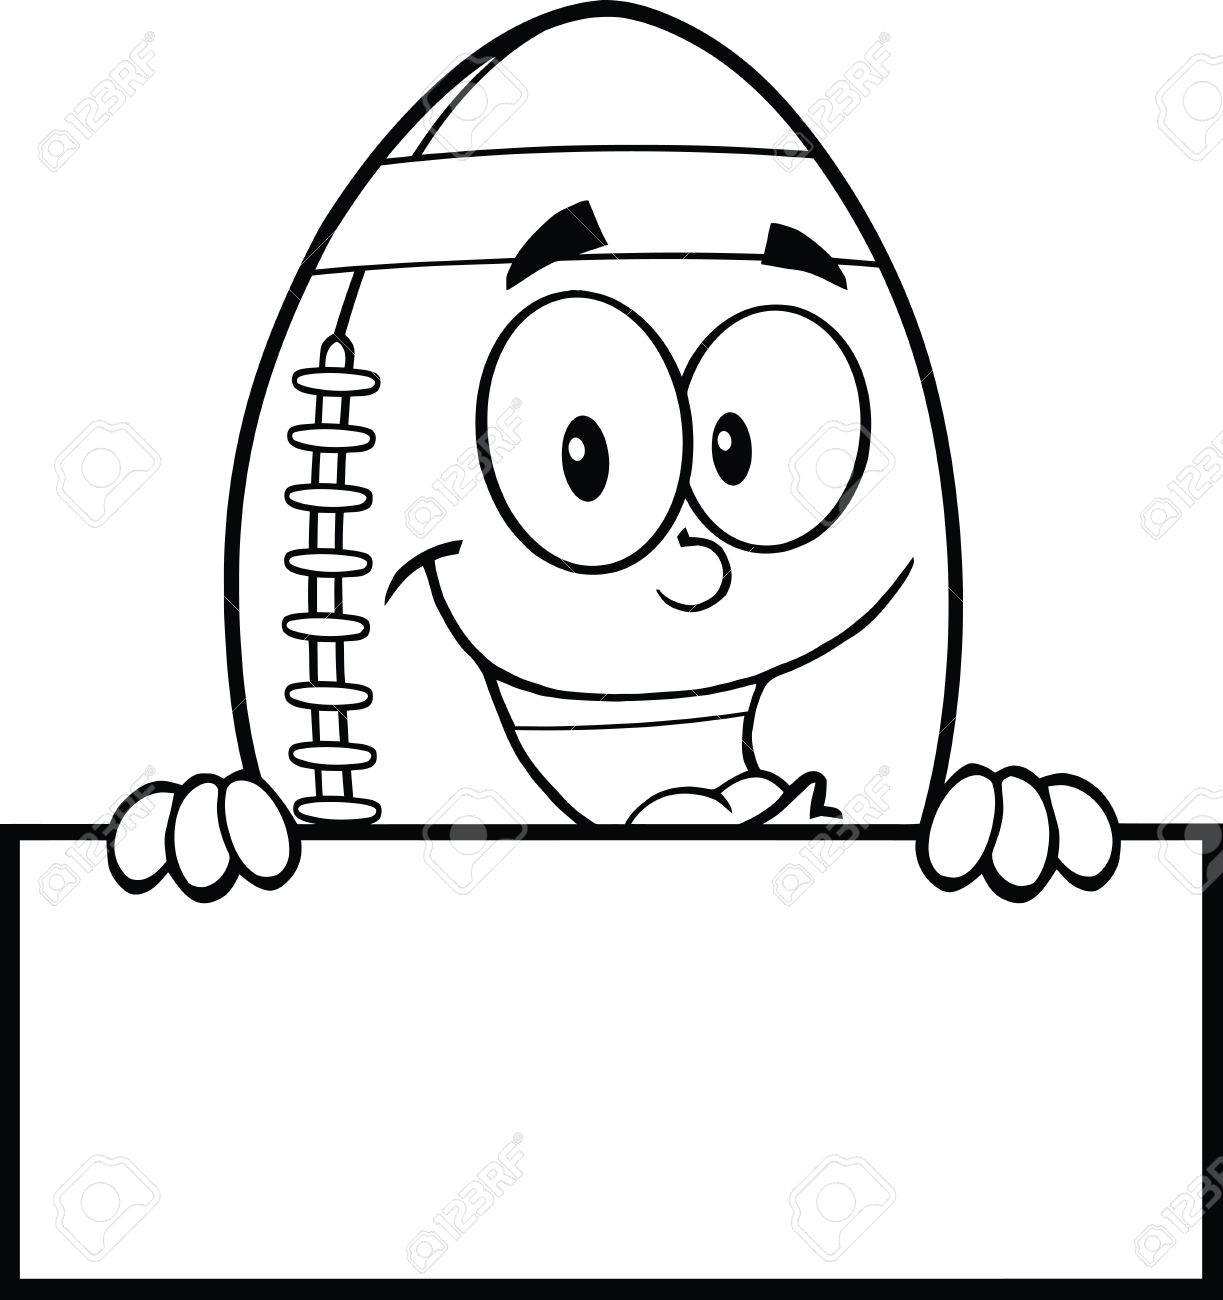 Black And White American Football Ball Cartoon Character Over